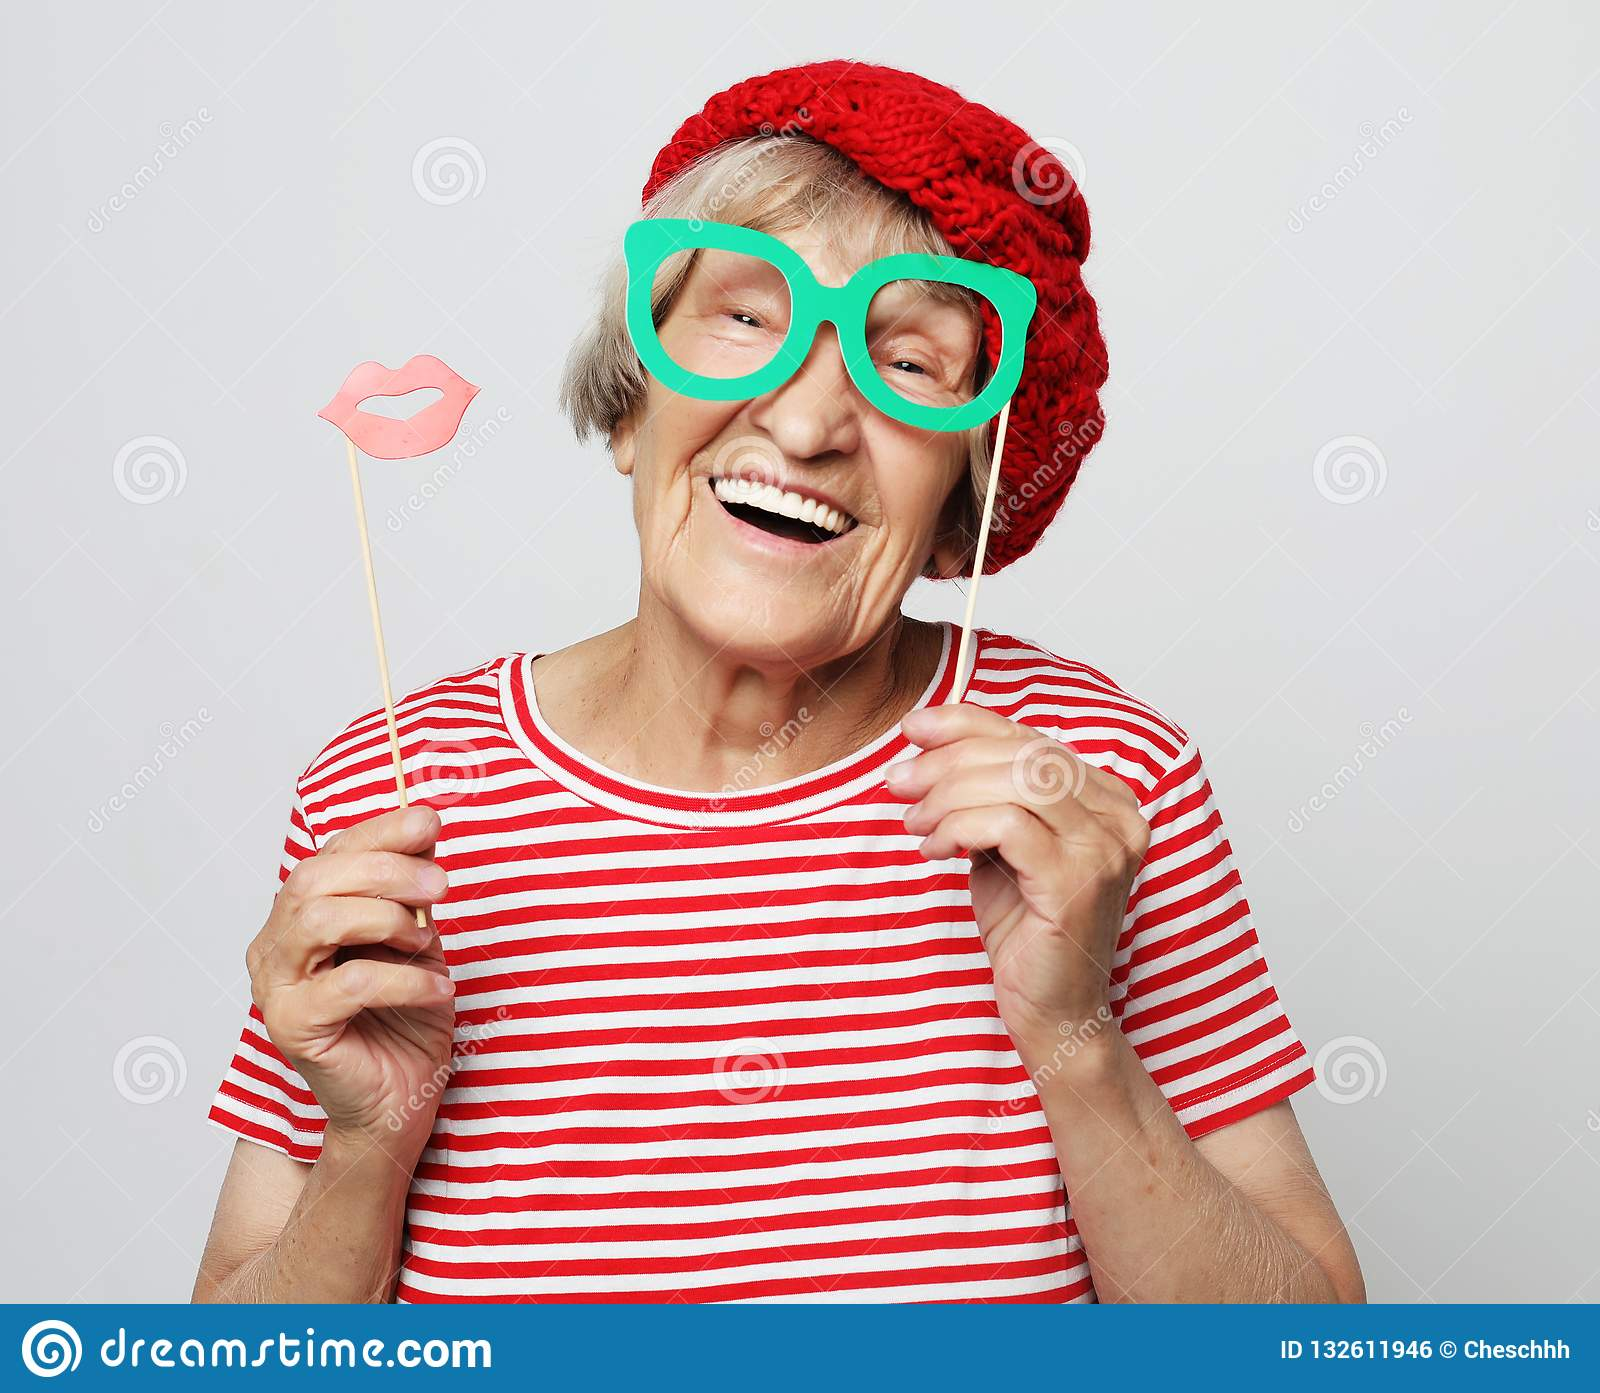 Funny grandmother wearing red clothes holding falce glasses and ready for party